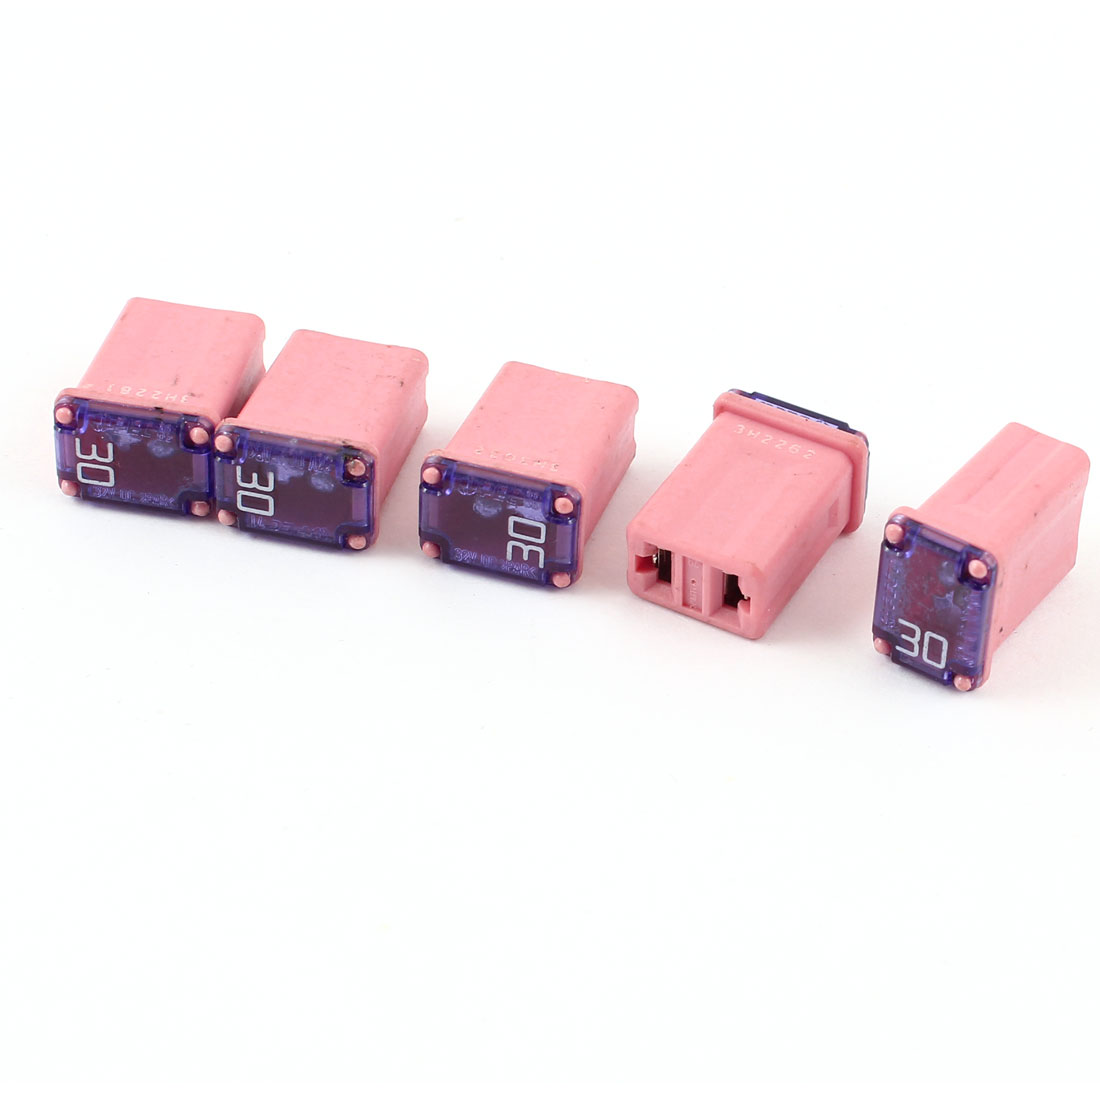 5 Pcs Pink Plastic 30A 12V-58V Female Push in Blade Cartridge PAL Fuse for Car